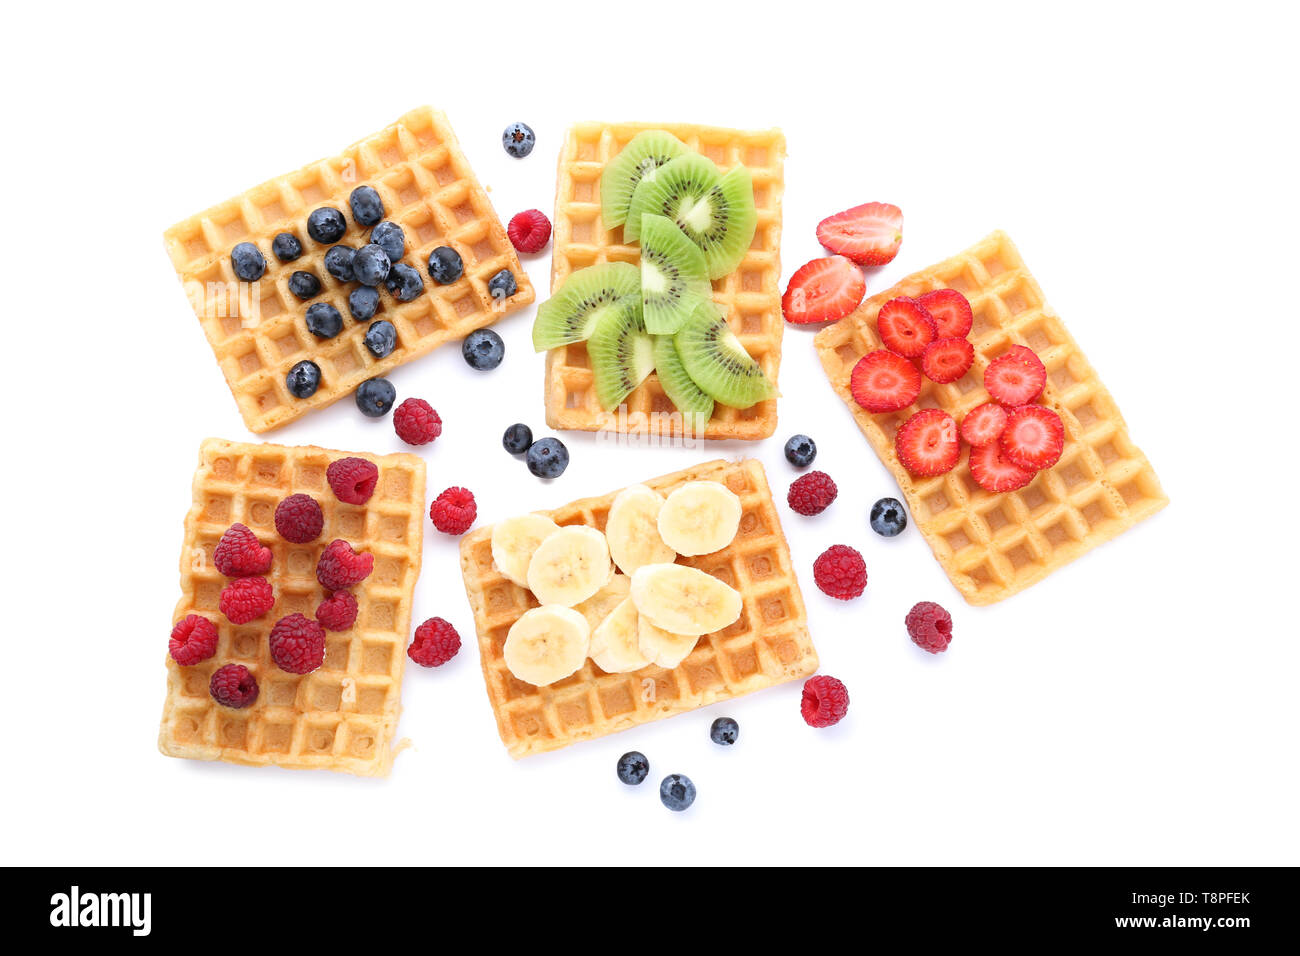 Delicious waffles with fruits and berries on white background - Stock Image